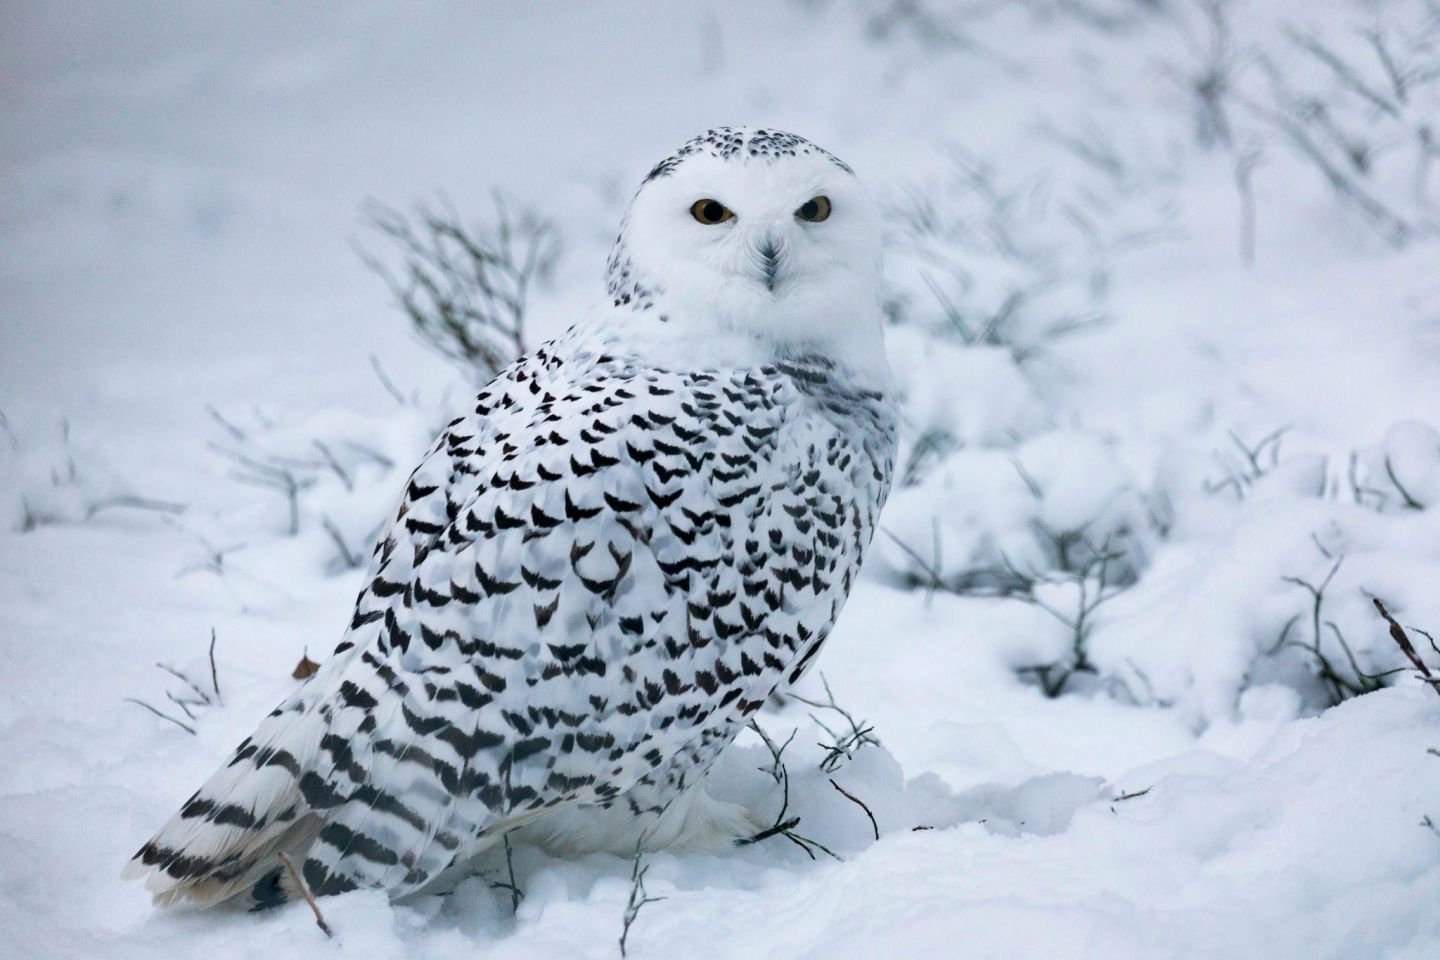 Snowy owls, part of the Arctic wildlife you'll find in Finnish Lapland